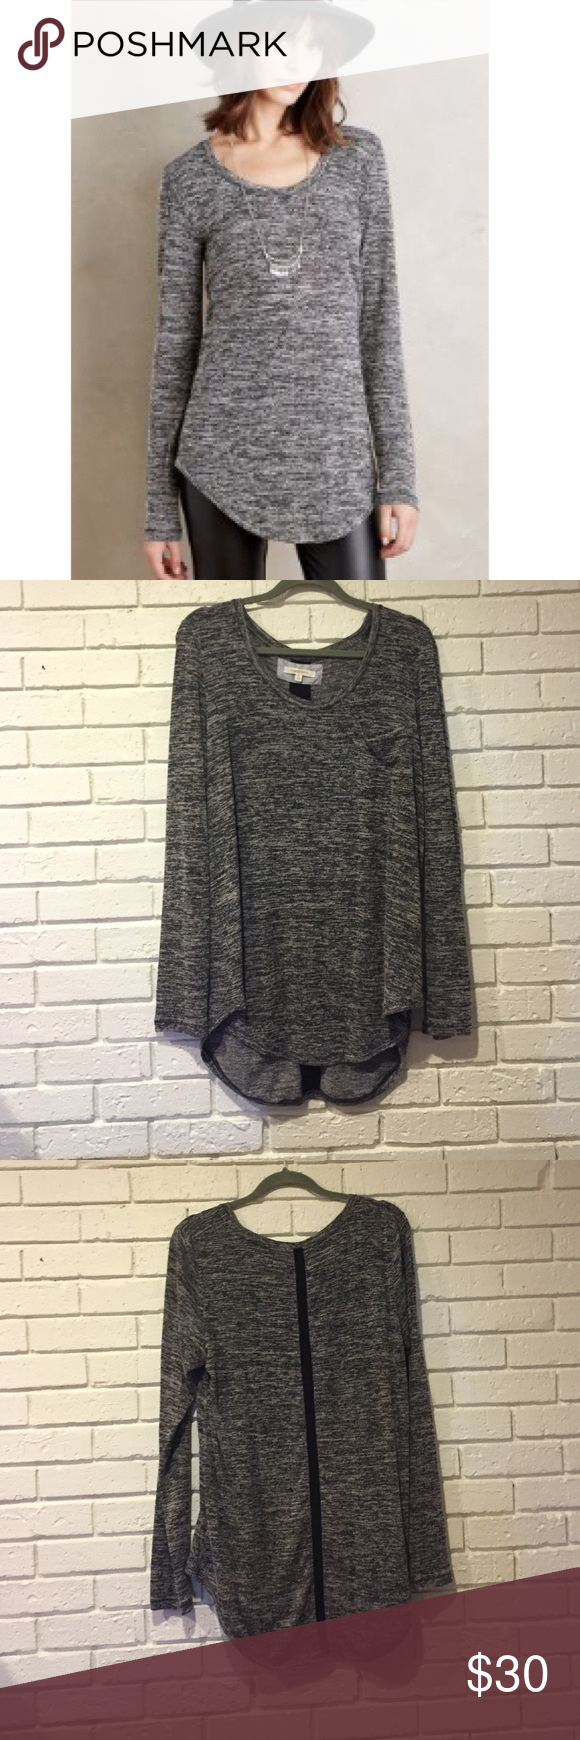 Anthropologie pure + good subbed baseball tee Worn once. Washed accordingly and laid flat to dry. Size XL. Black ribbon down back. Anthropologie Tops Tees - Long Sleeve